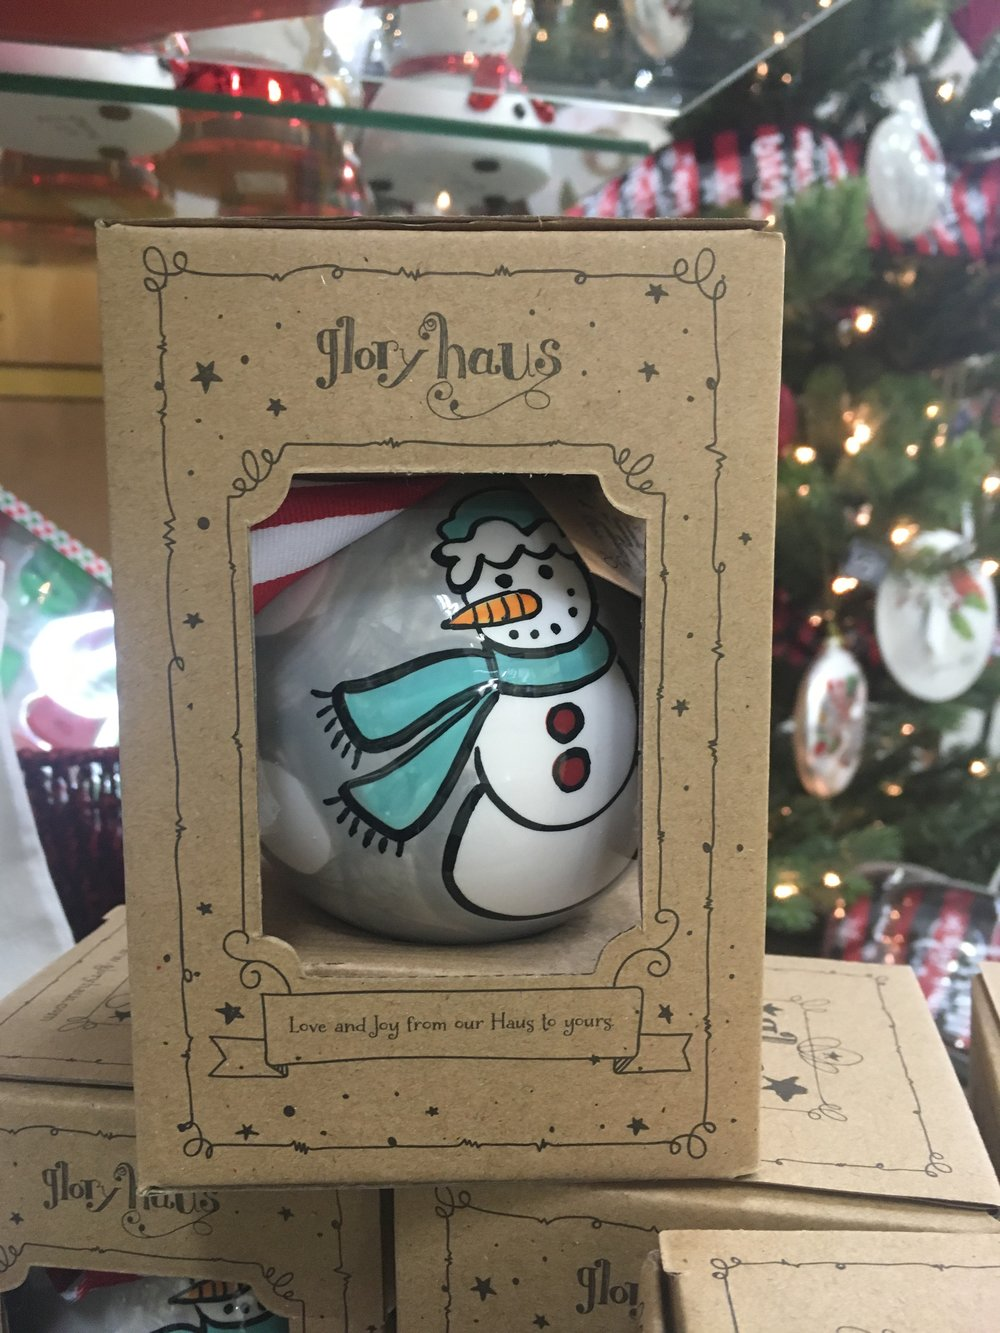 These beautiful hand-painted ceramic ornaments will bring joy into your home.They are available in the Reeves-Sain Gift Shoppe in a variety of different heart-warming designs that will make the perfect addition to your Christmas tree. They're also sure to please at a holiday gift exchange or as a unique hostess gift!  Reeves Sain Gift Shoppe 1801 Memorial Blvd